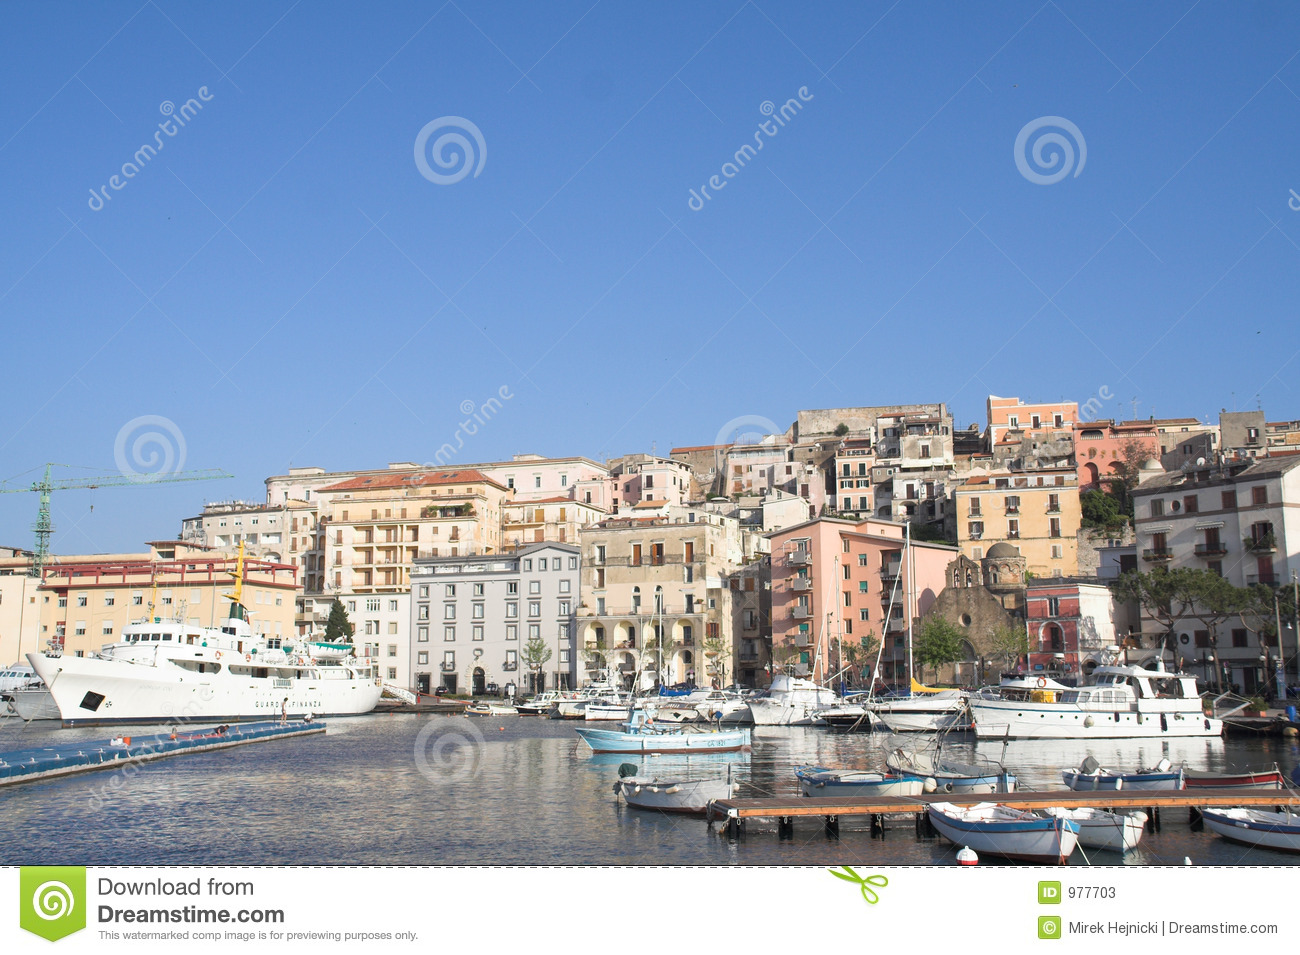 Italy - gaeta - historical city and harbour